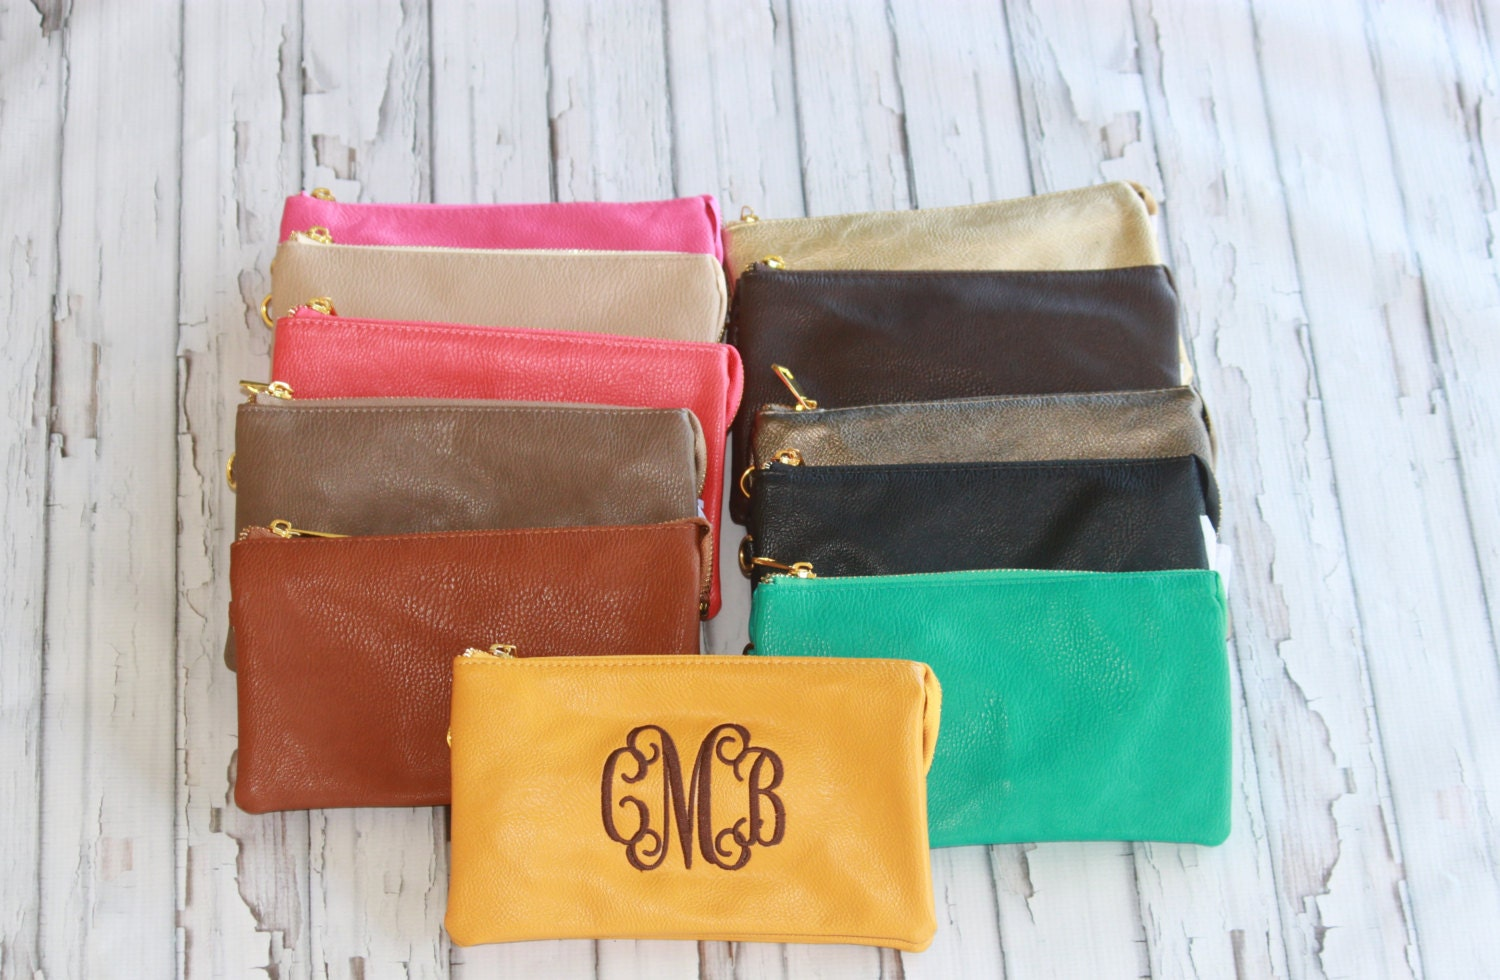 ysl clutch new collection - Cross body Purse Wristlet Clutch Monogrammed by thepurplepetunia